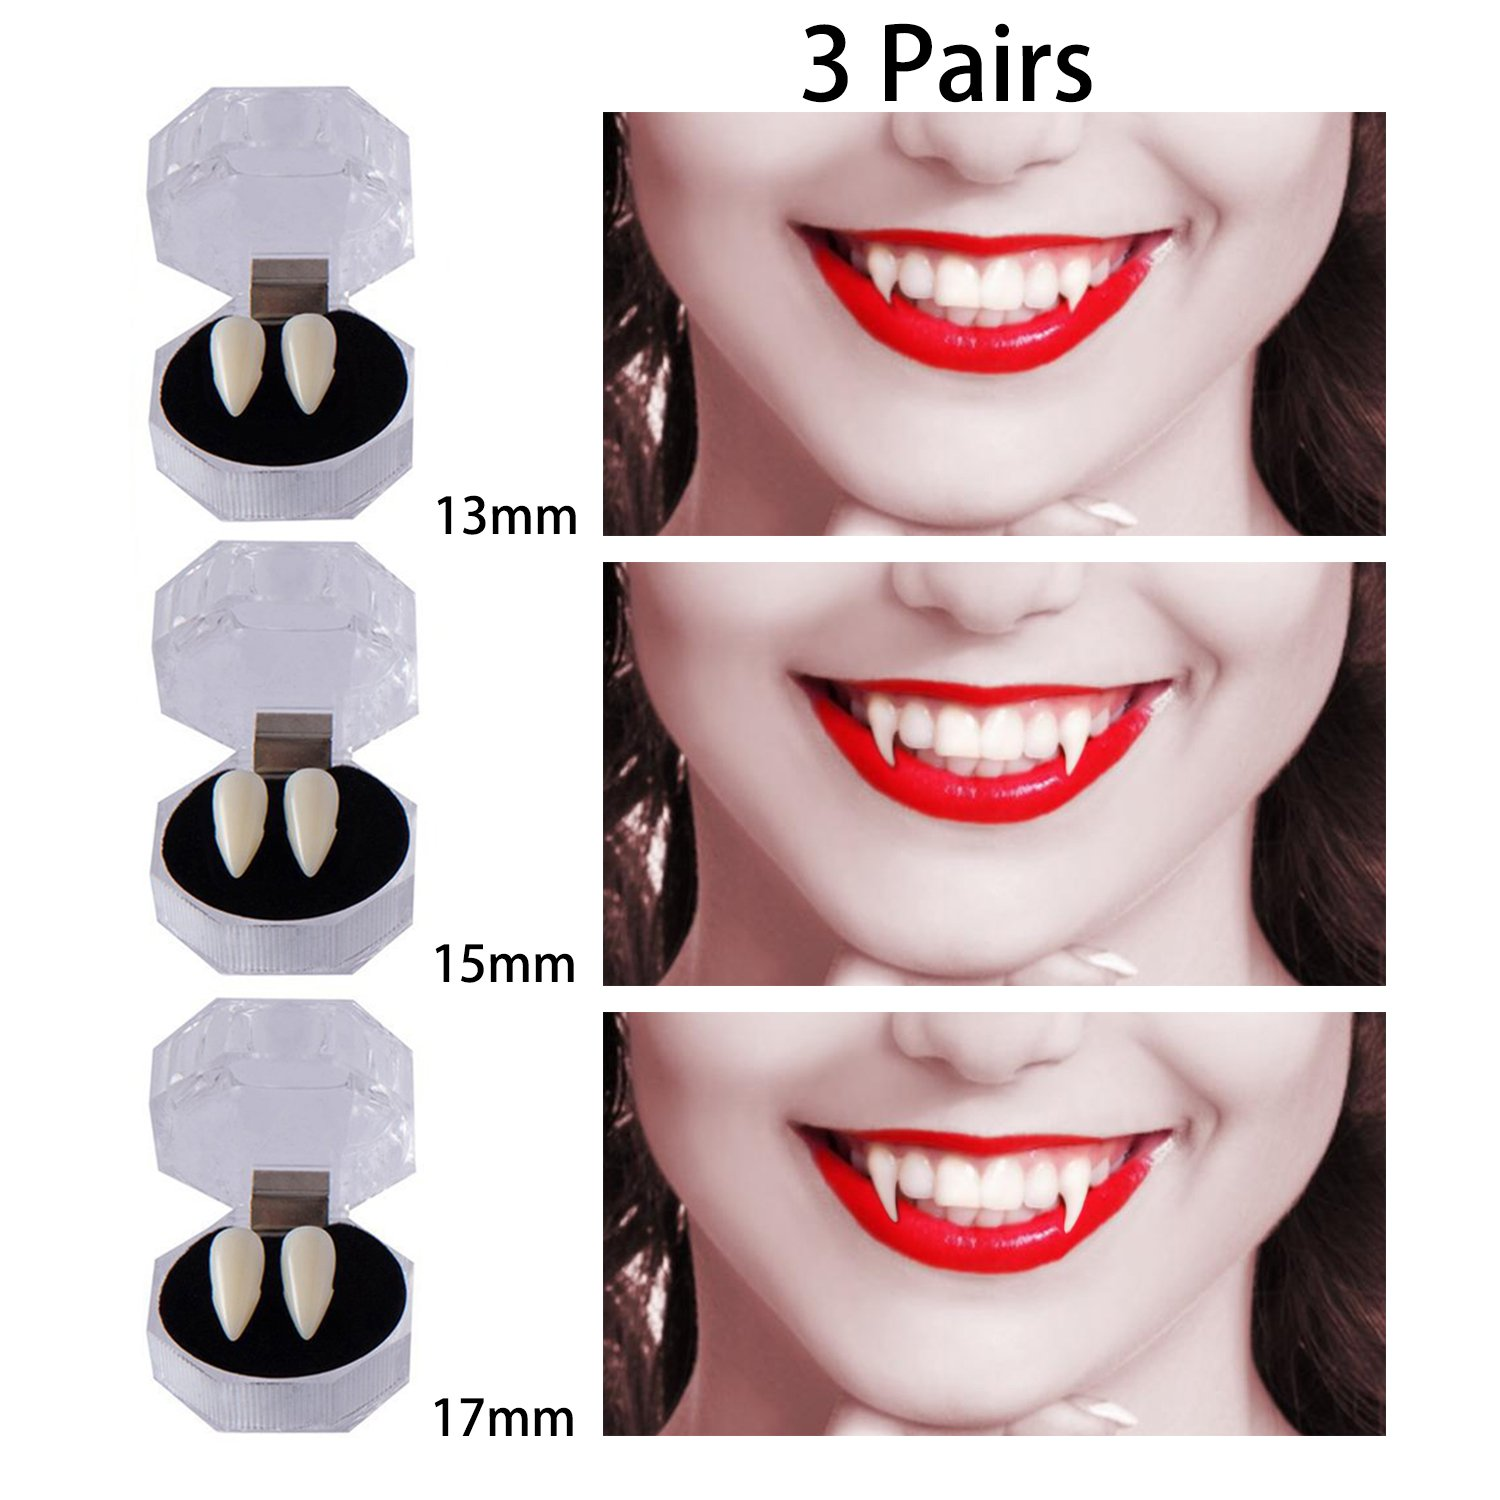 3 Pairs Vampire Teeth for Halloween, Zombie Ghost Devil Werewolf Fangs for Costume Party Halloween Horror Props (13mm,15mm,17mm)